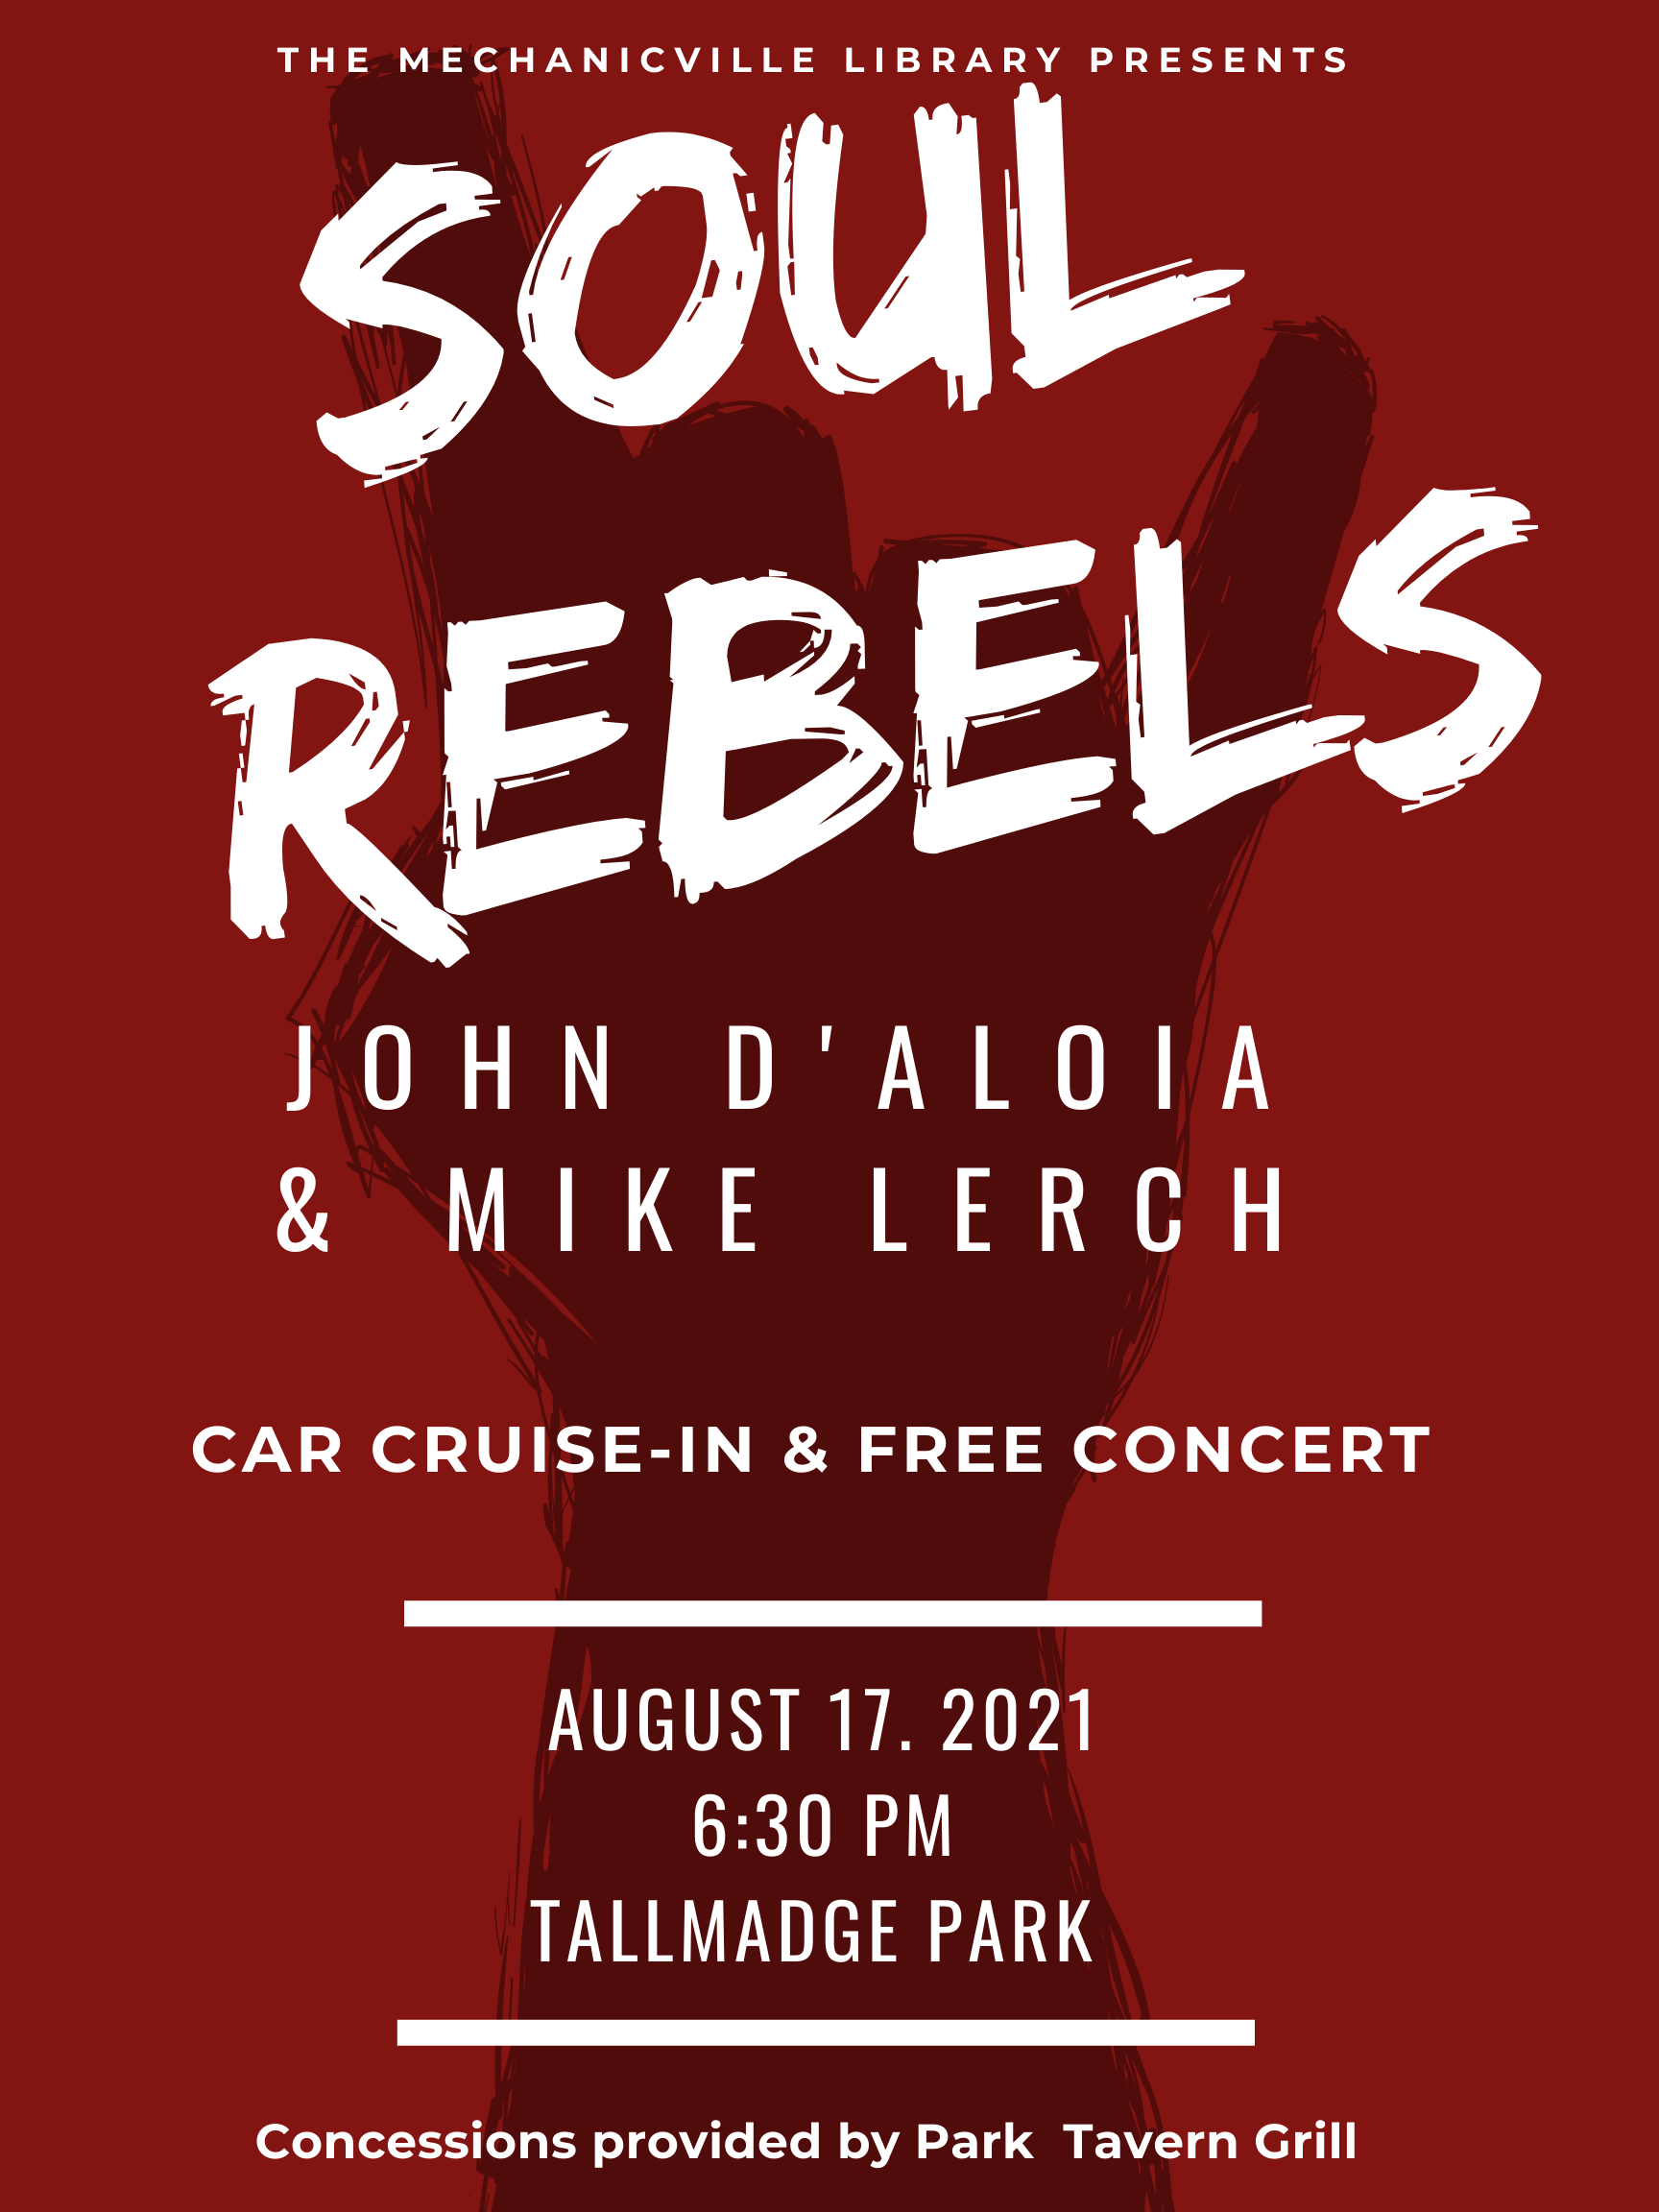 Concert & Cruise In at the Park: Soul Rebels @ Tallmadge Park | Mechanicville | New York | United States